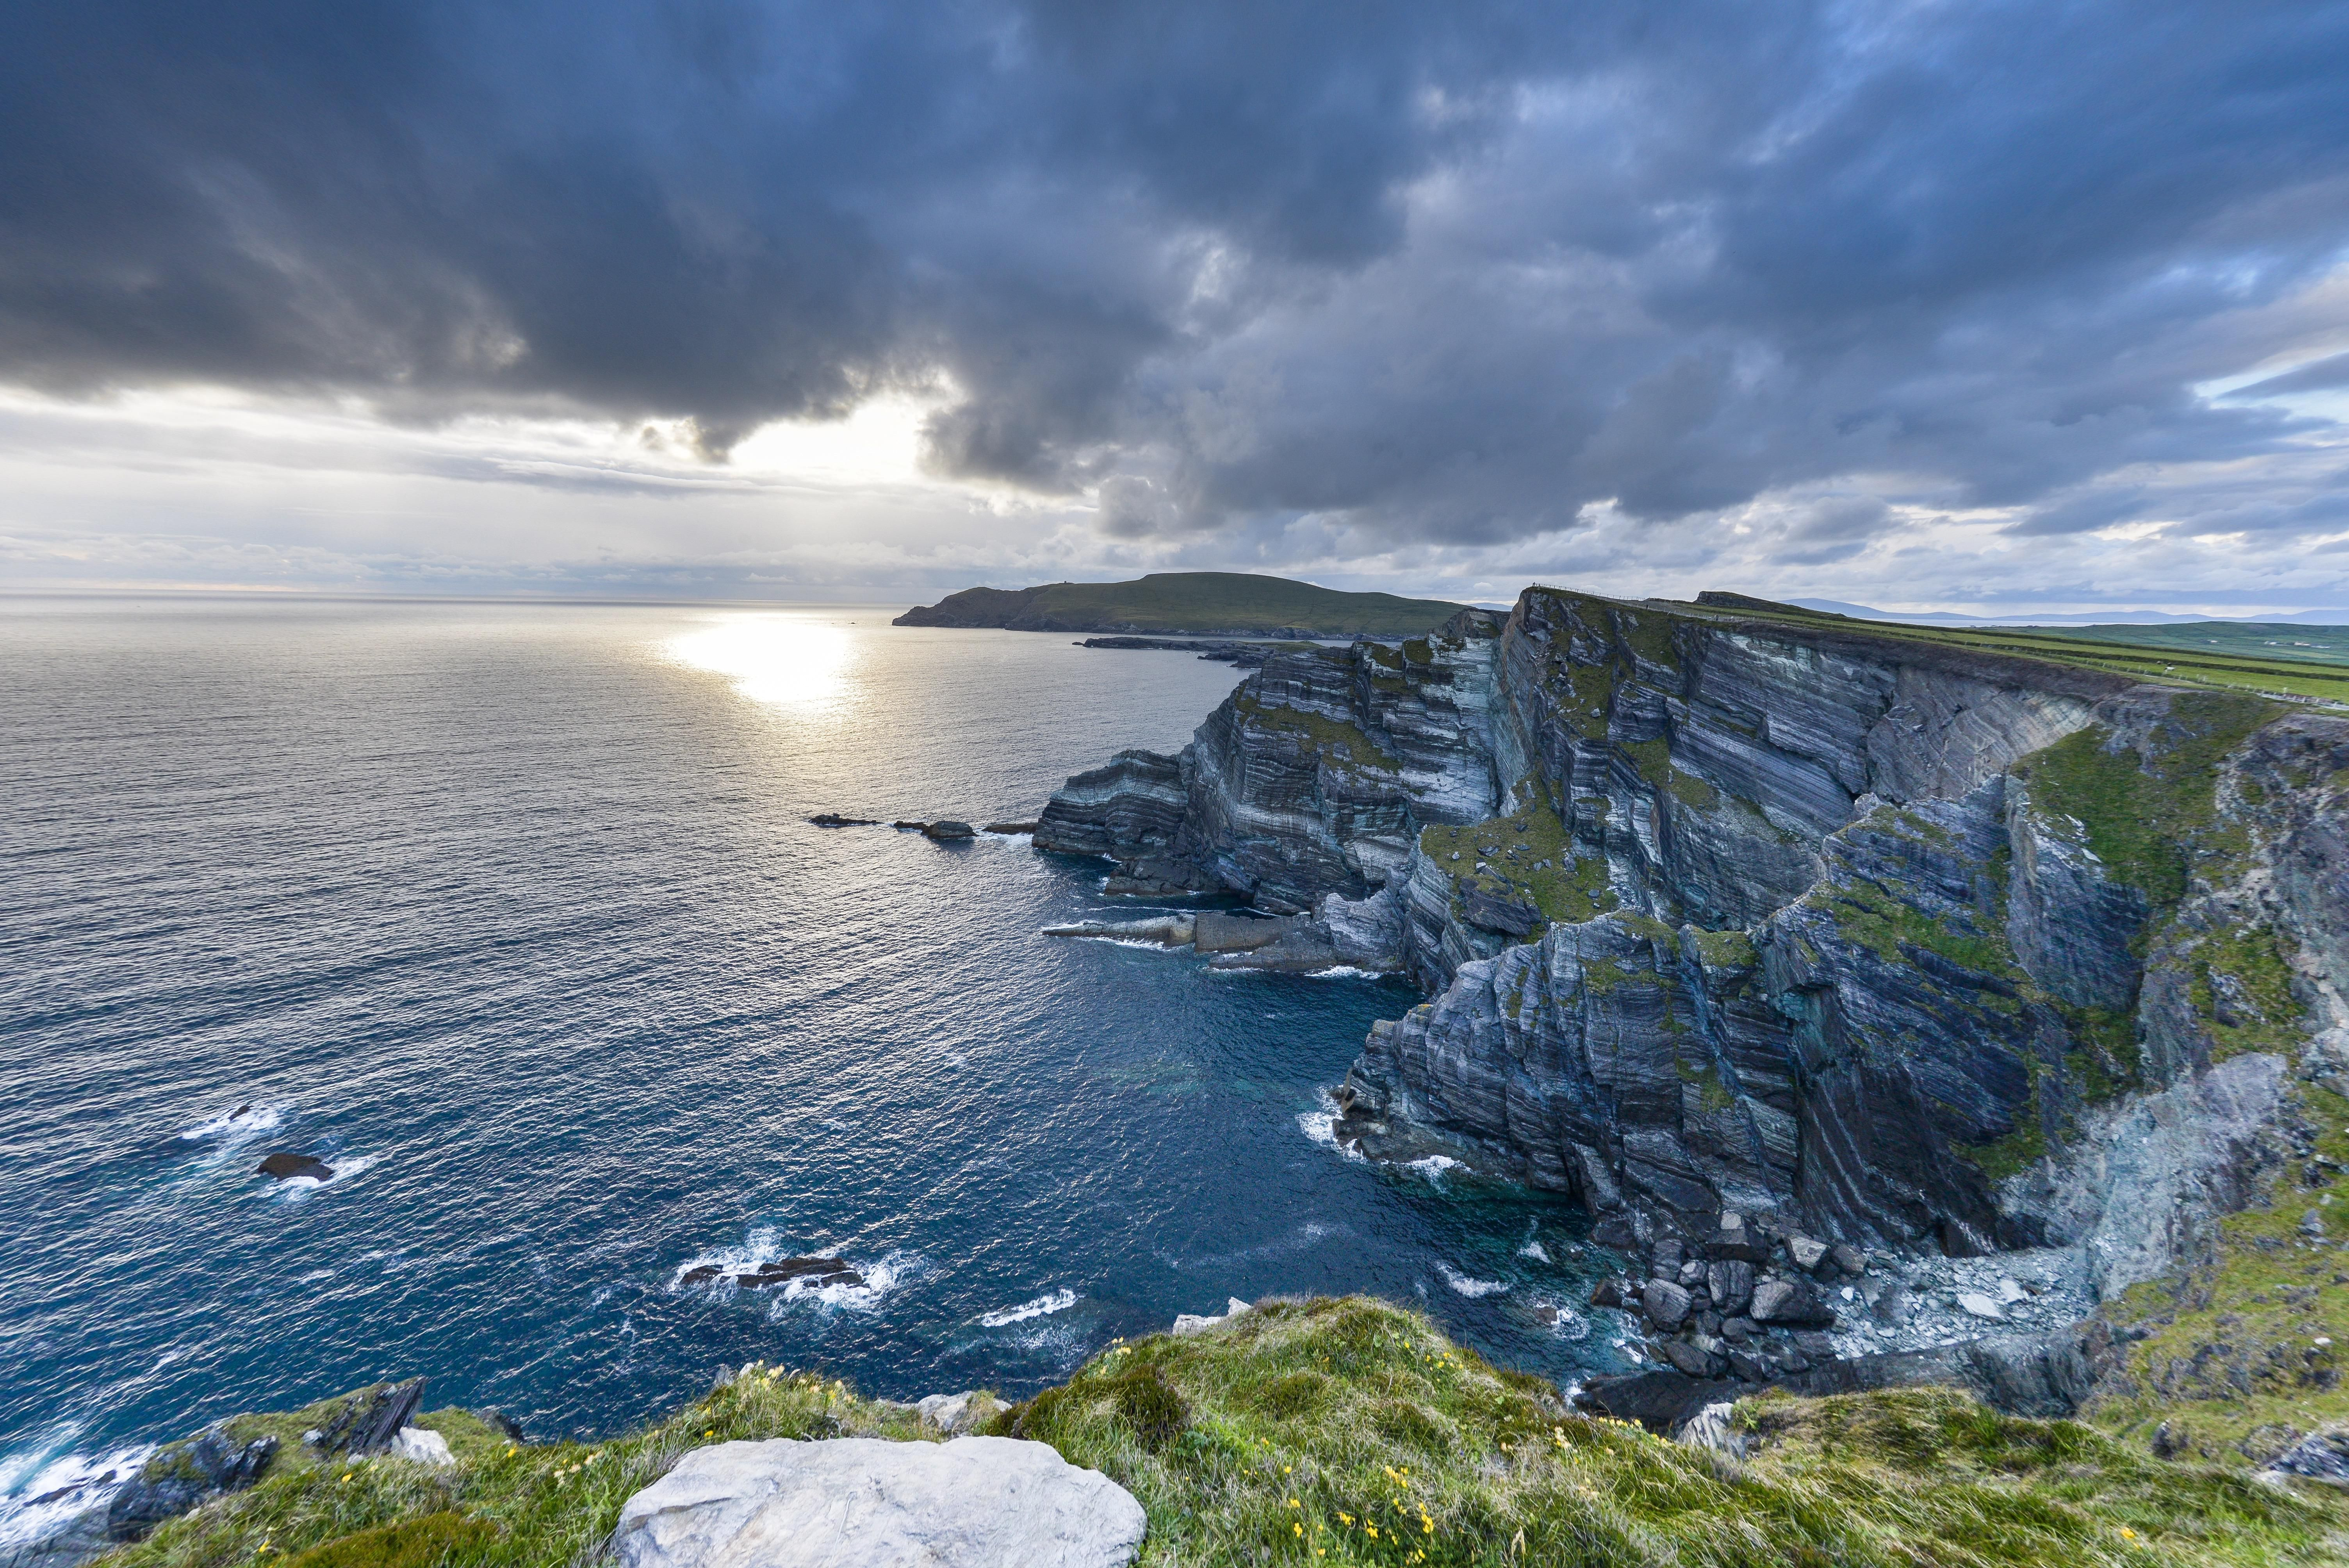 The Cliffs Of Kerry Outside Of Portmagee In Western Ireland Beautifulnature Naturephotography Photogr In 2020 Travel Photography Nature Photography Ireland Travel